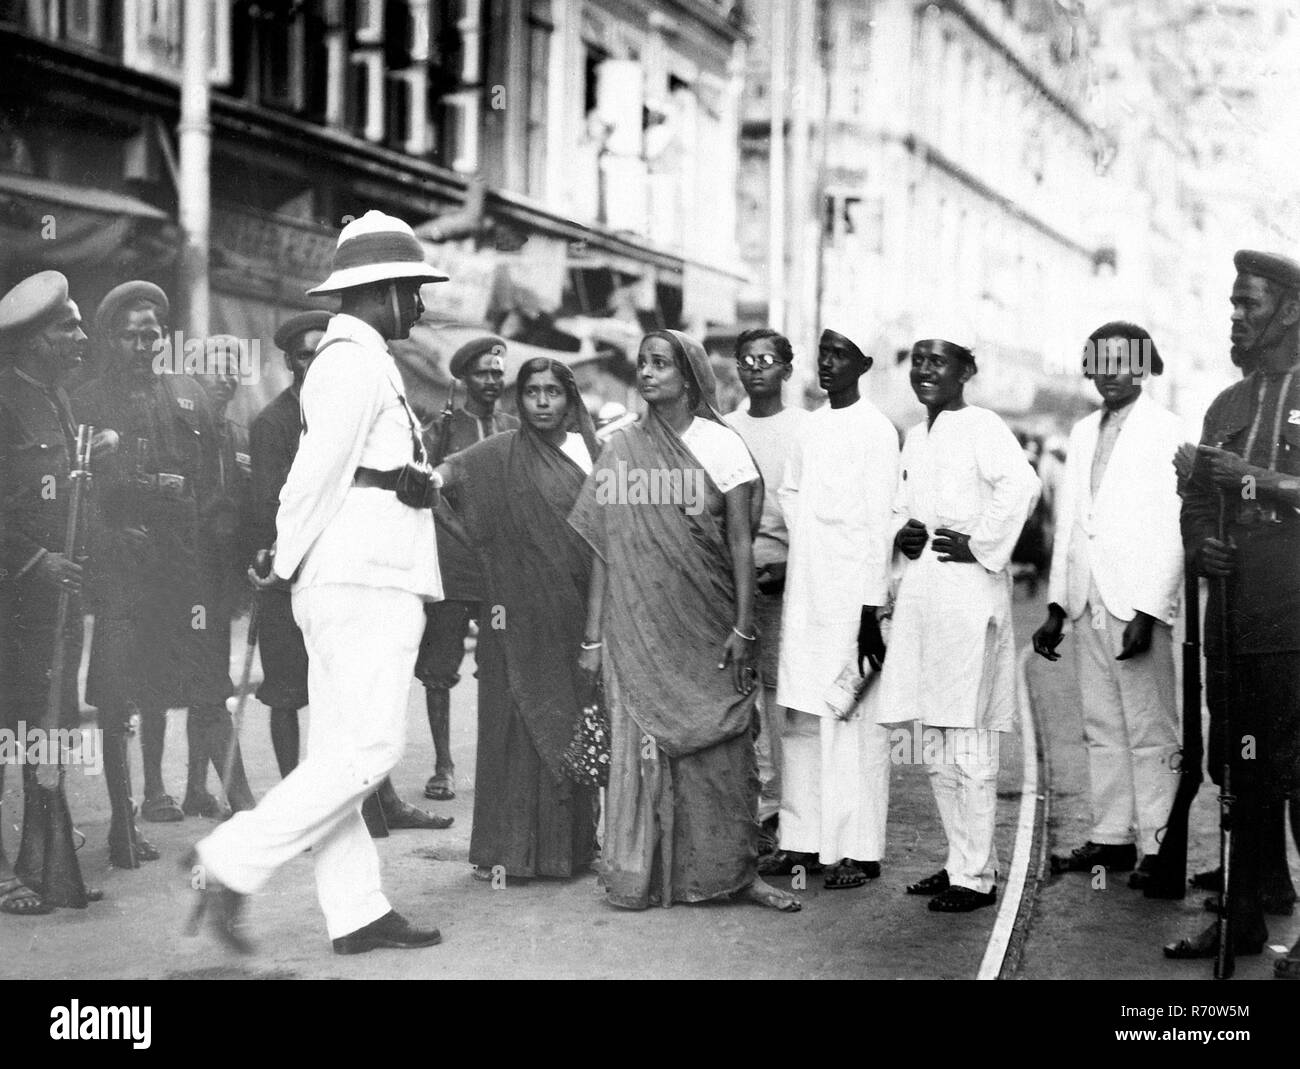 Woman demonstrator during Quit India movement 1942 - Stock Image